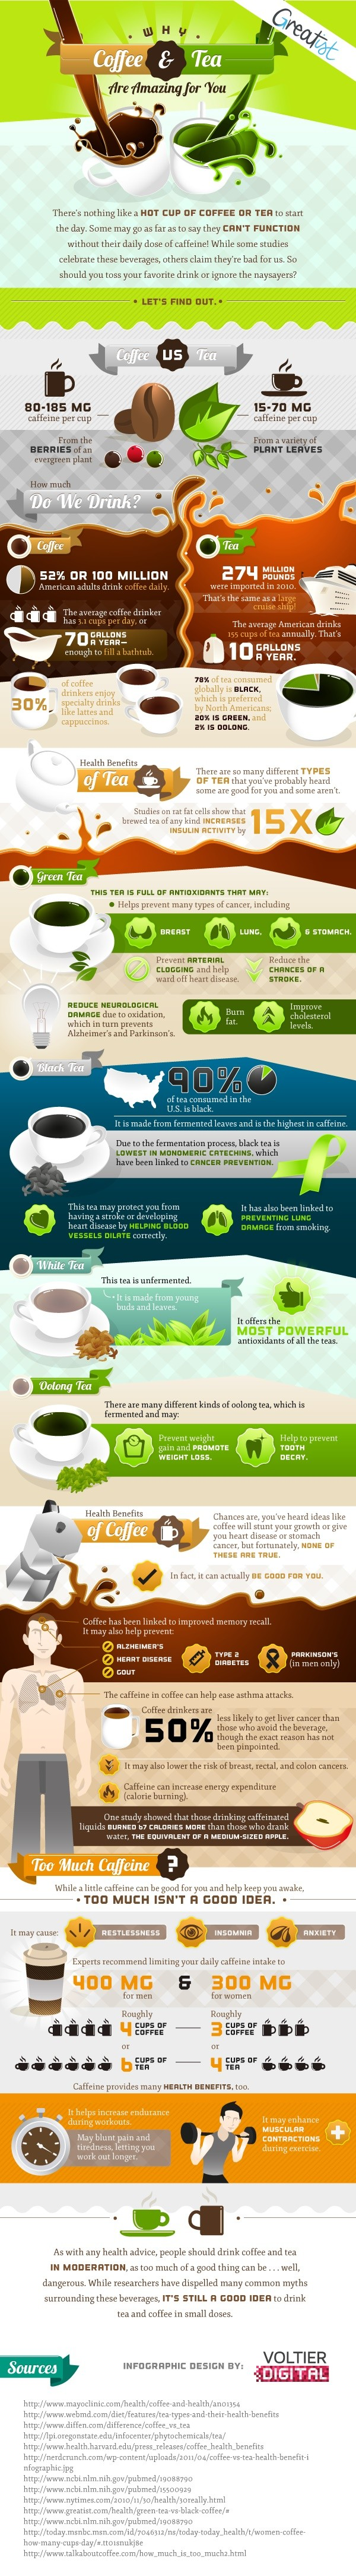 Why-Coffee-and-Tea-are-Amazing-for-You